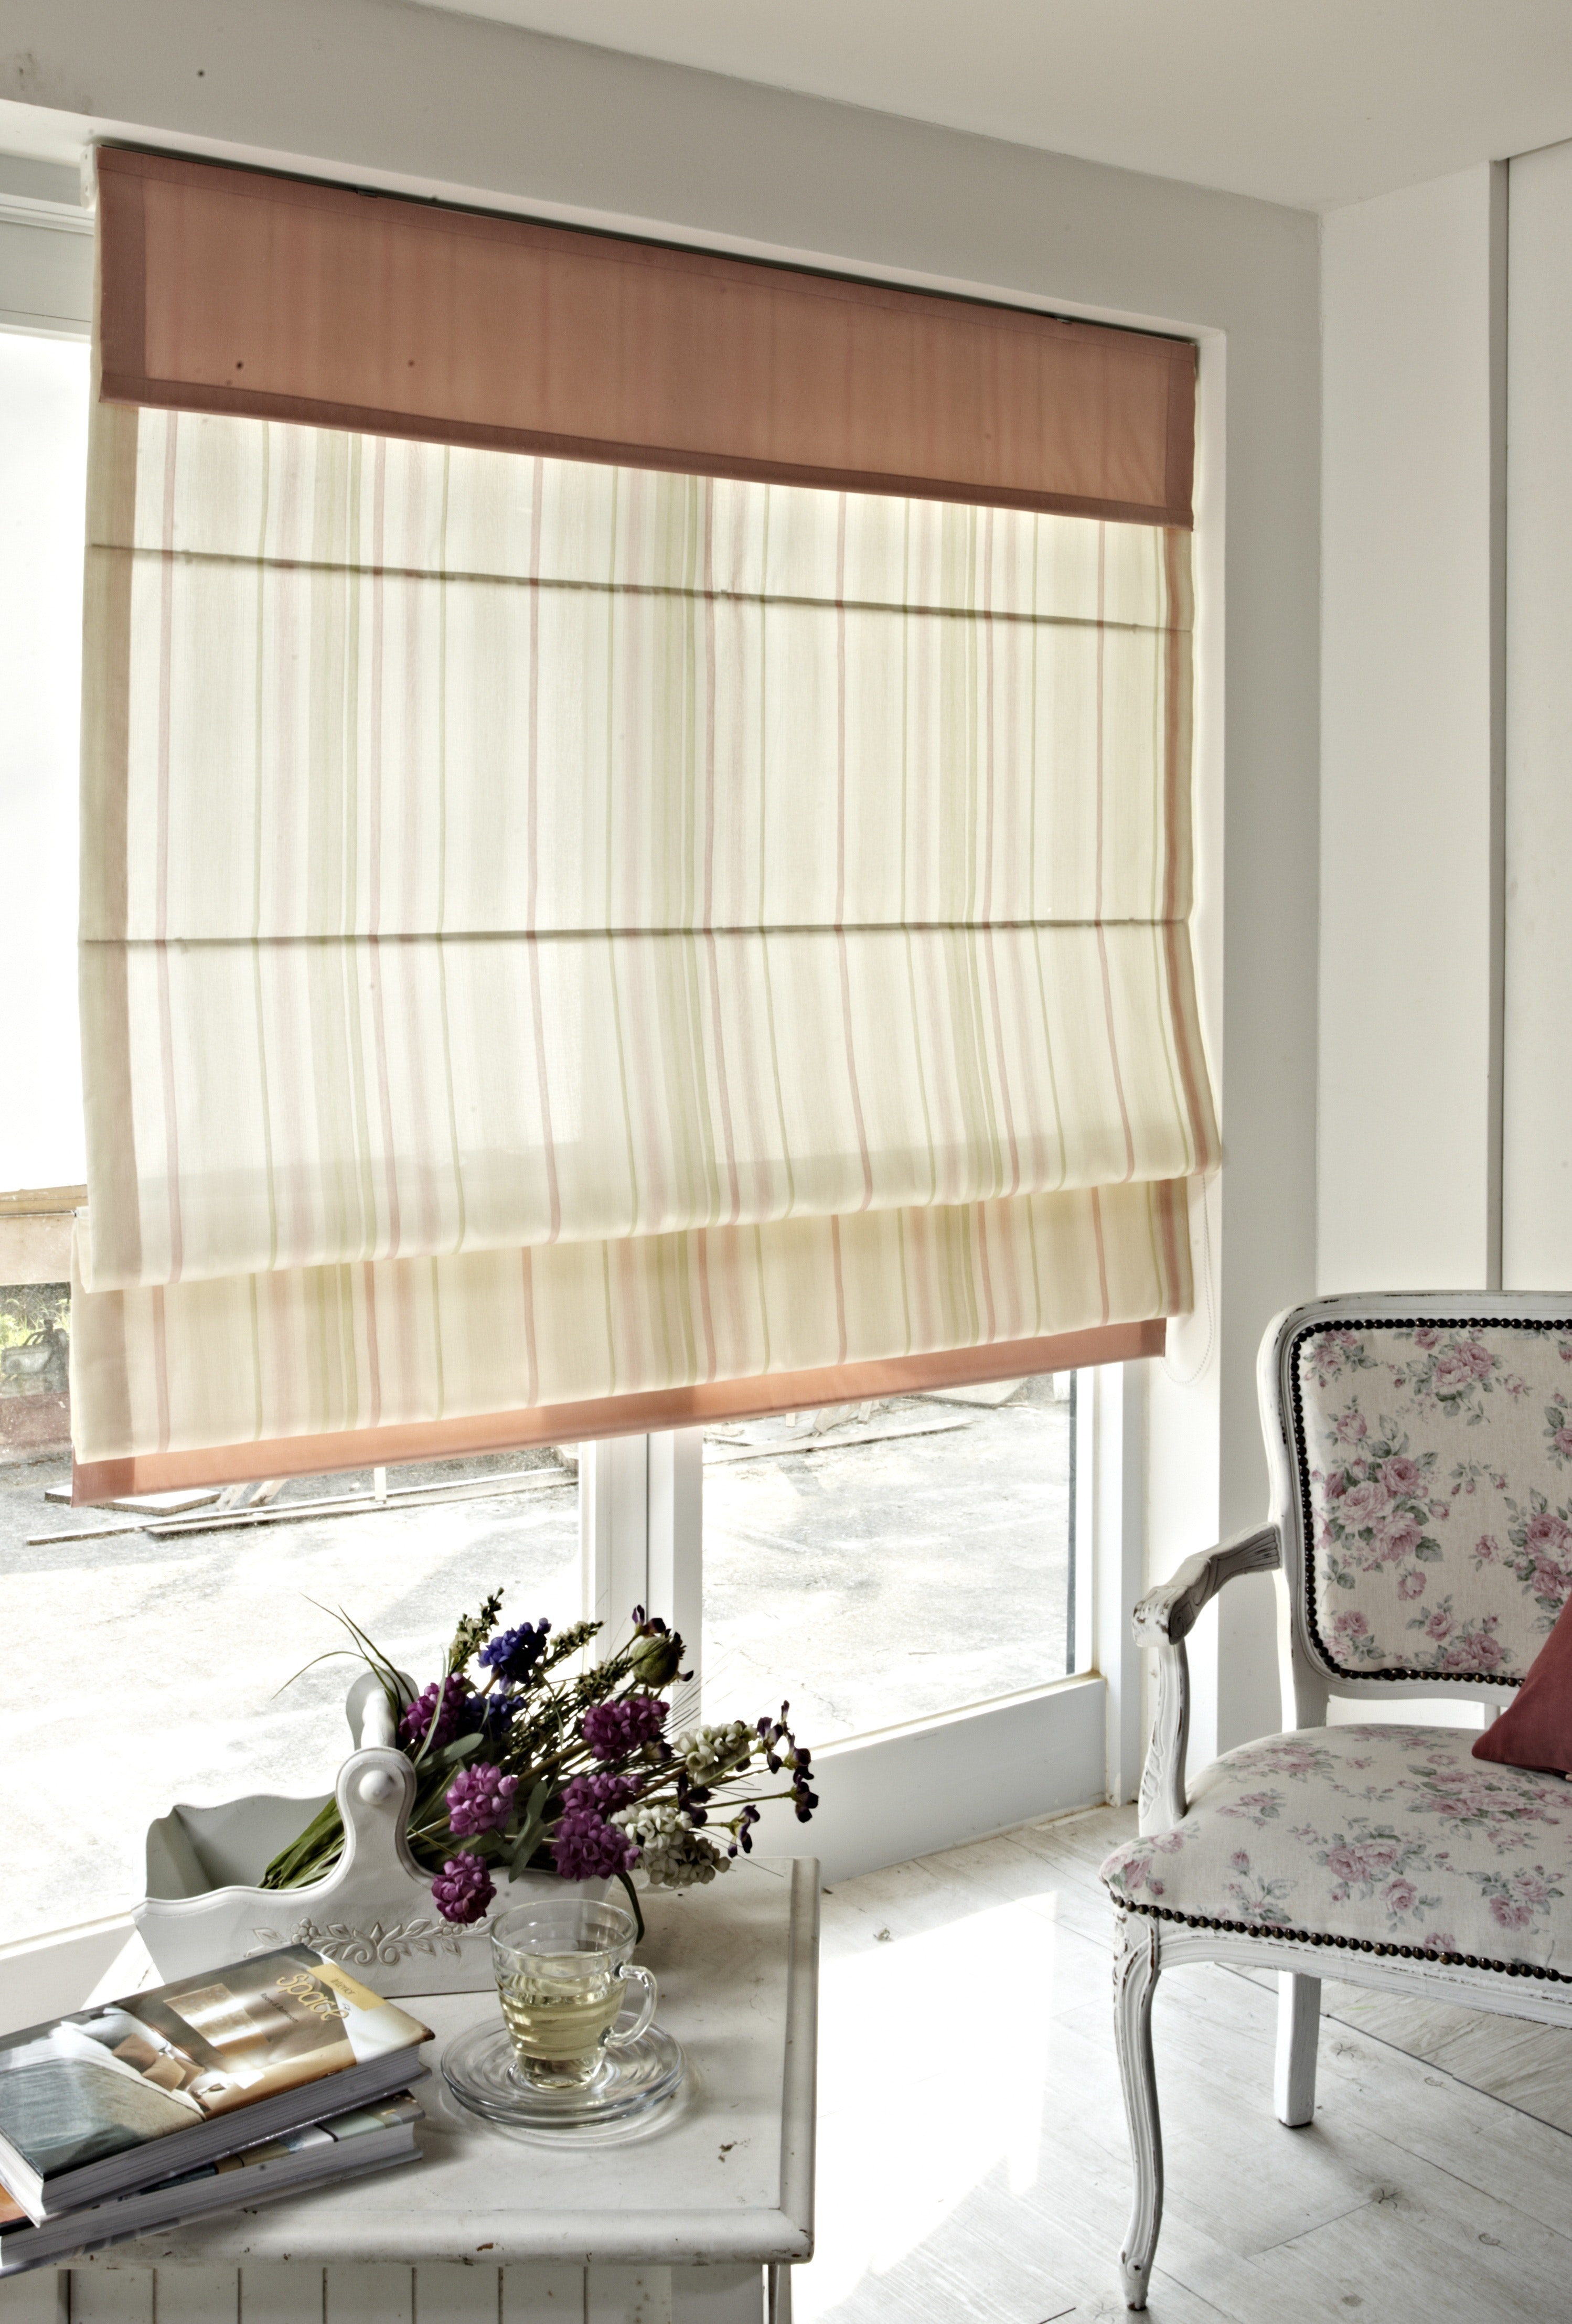 4 Interesting Ways to Choose Popular Window Treatments for your Home!